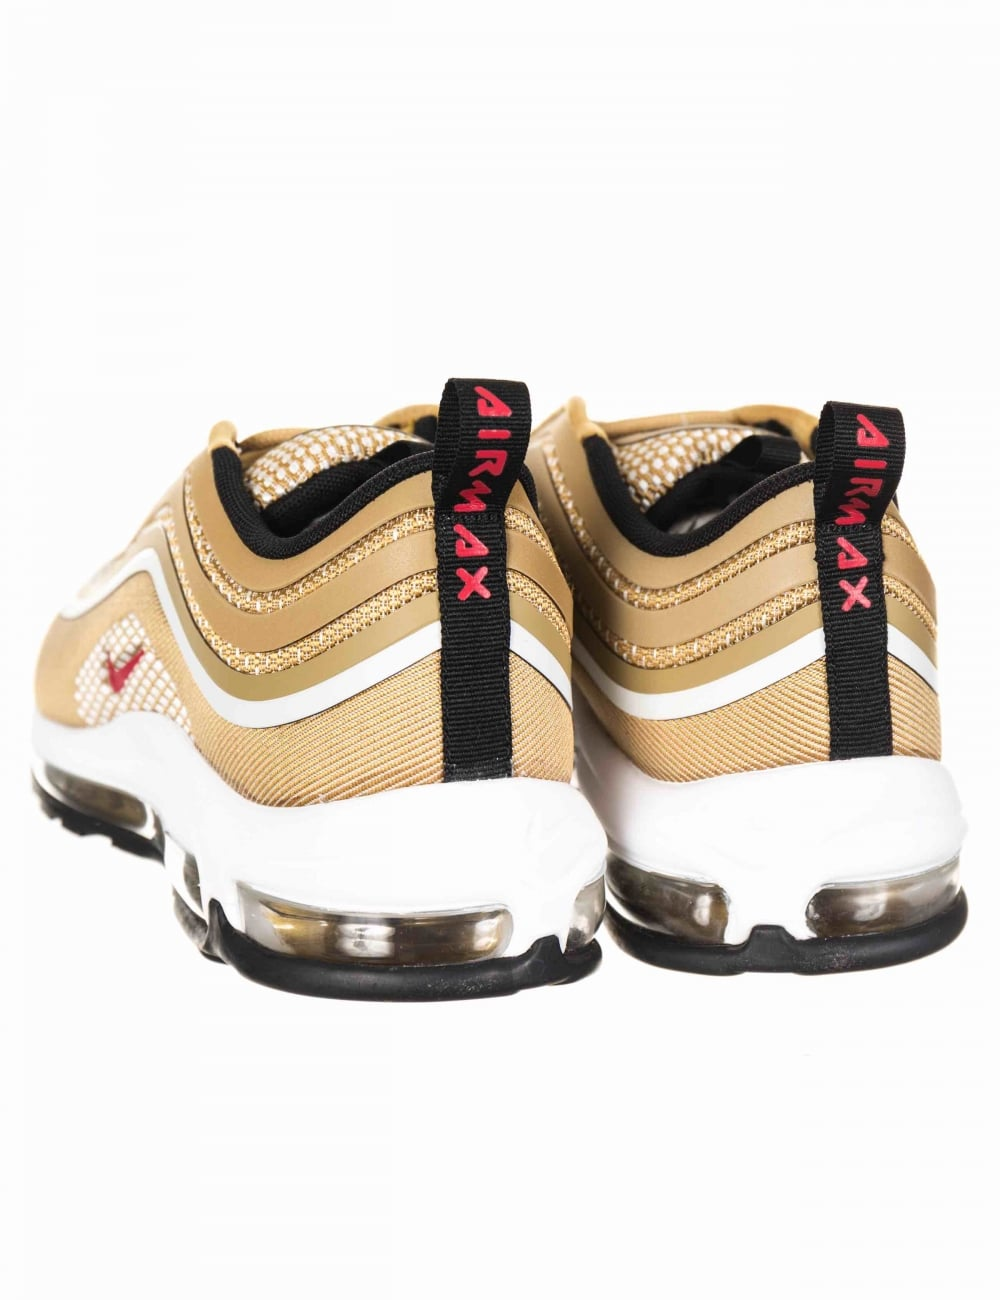 Air Max 97 Ultra '17 OG Shoes Metallic Gold